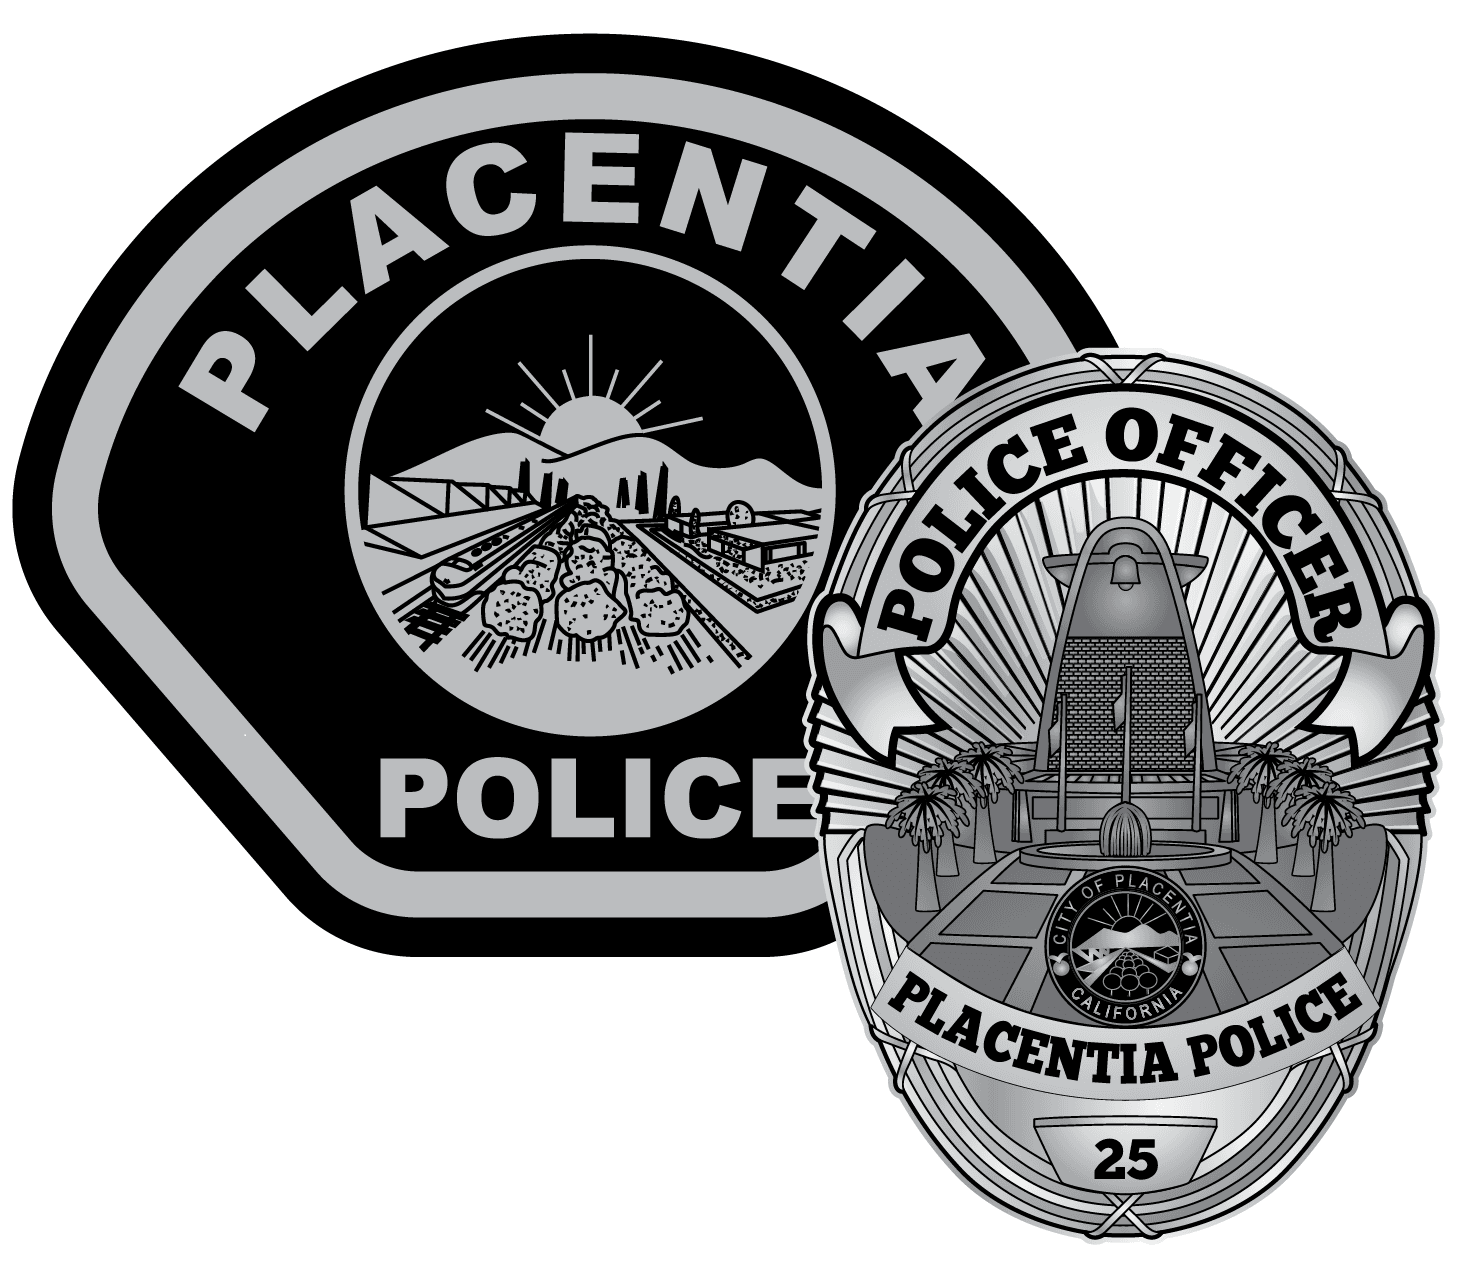 Placentia Badge and Patch